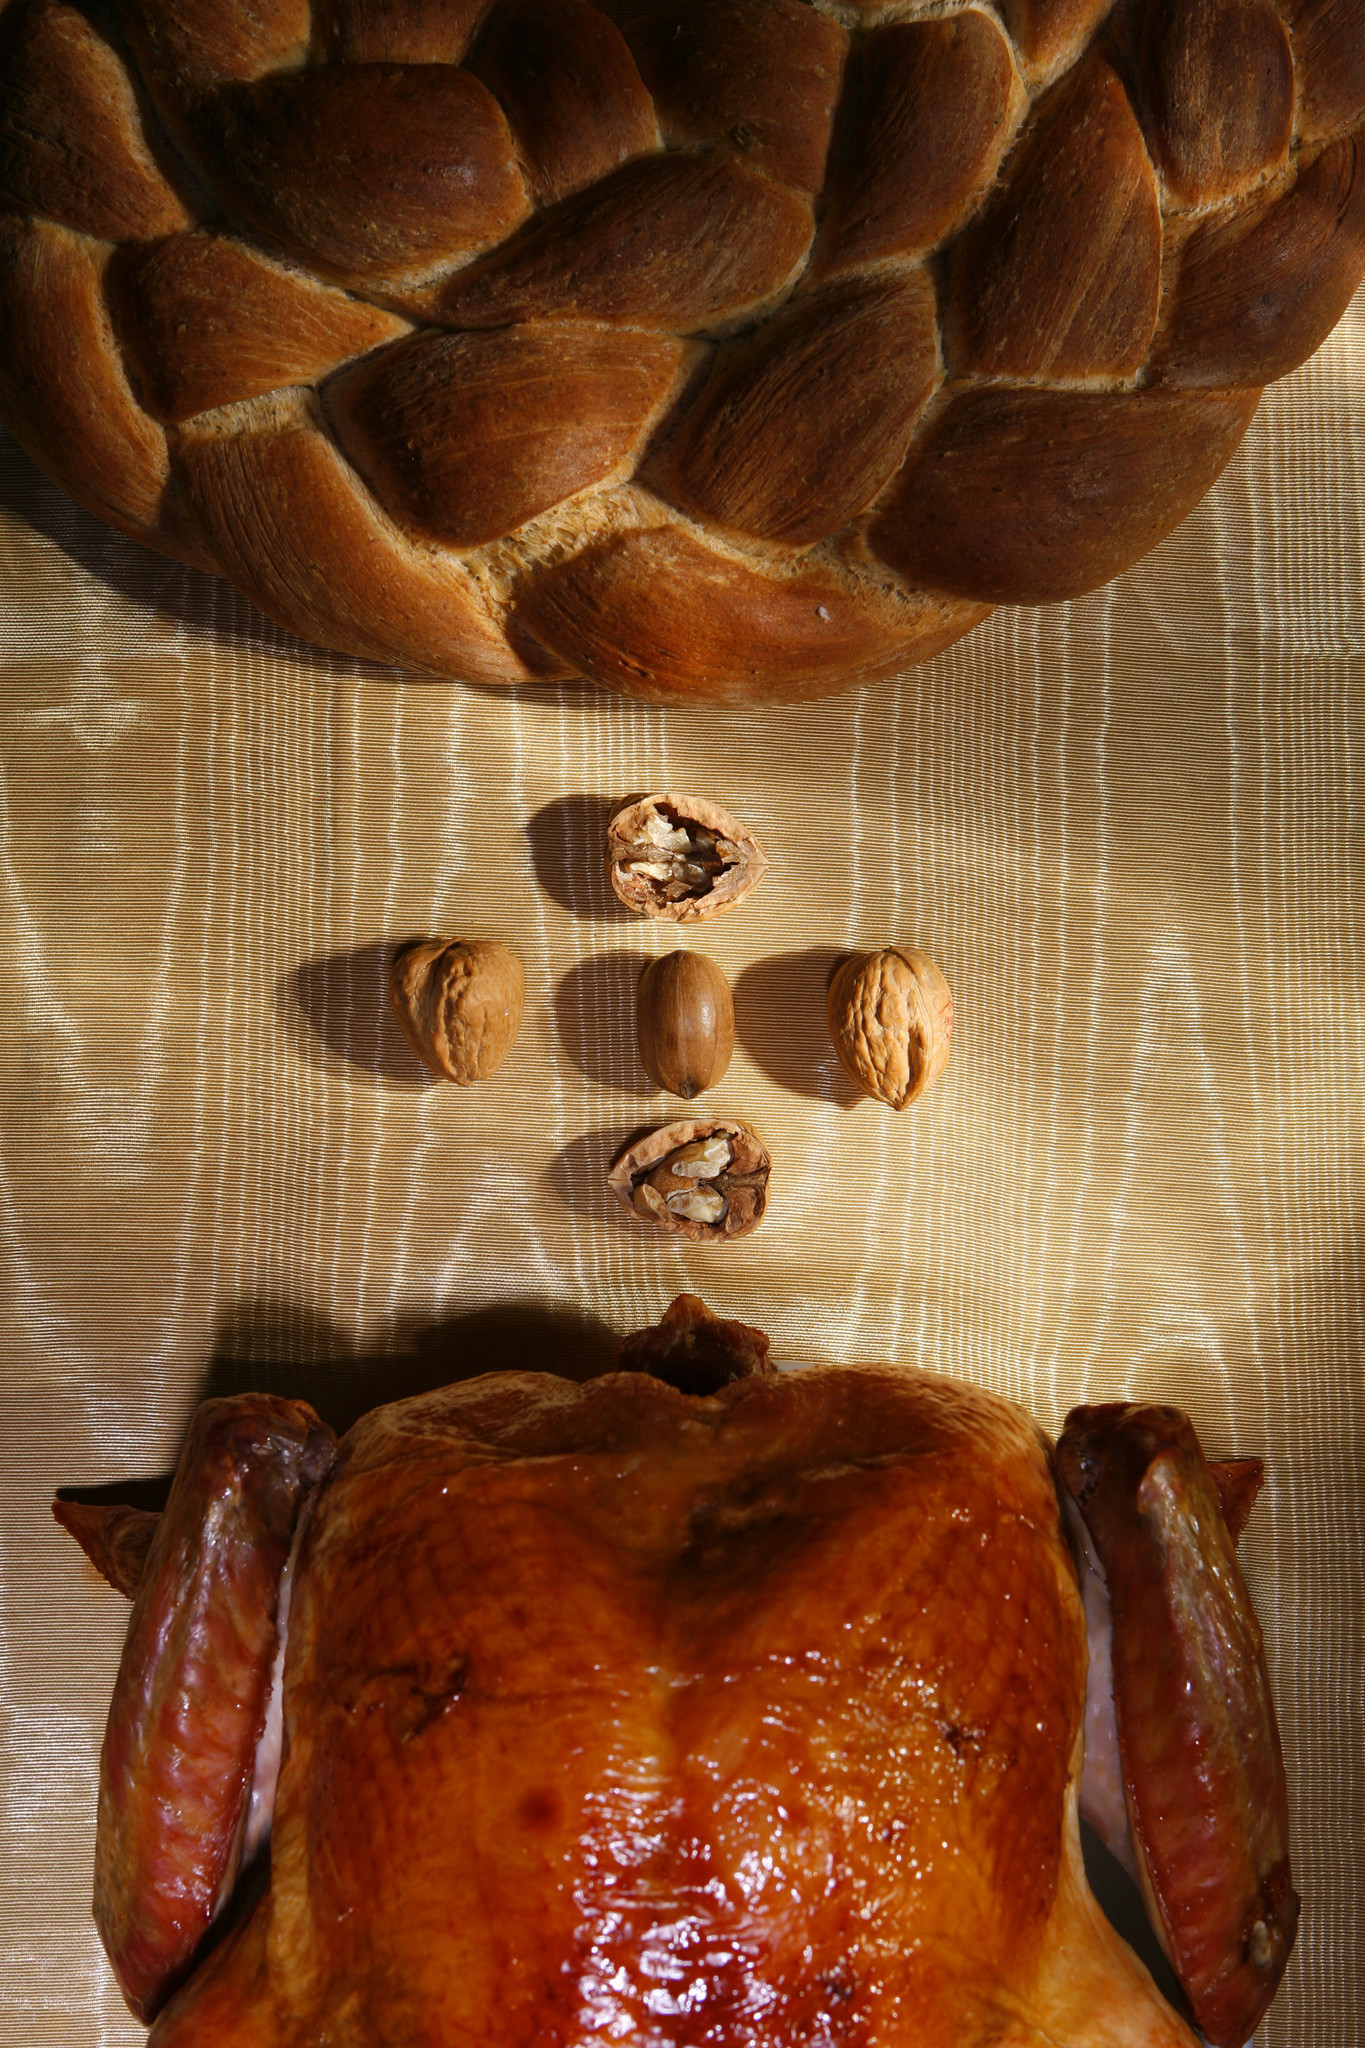 Photos: 97 great Thanksgiving recipes - Braided bread